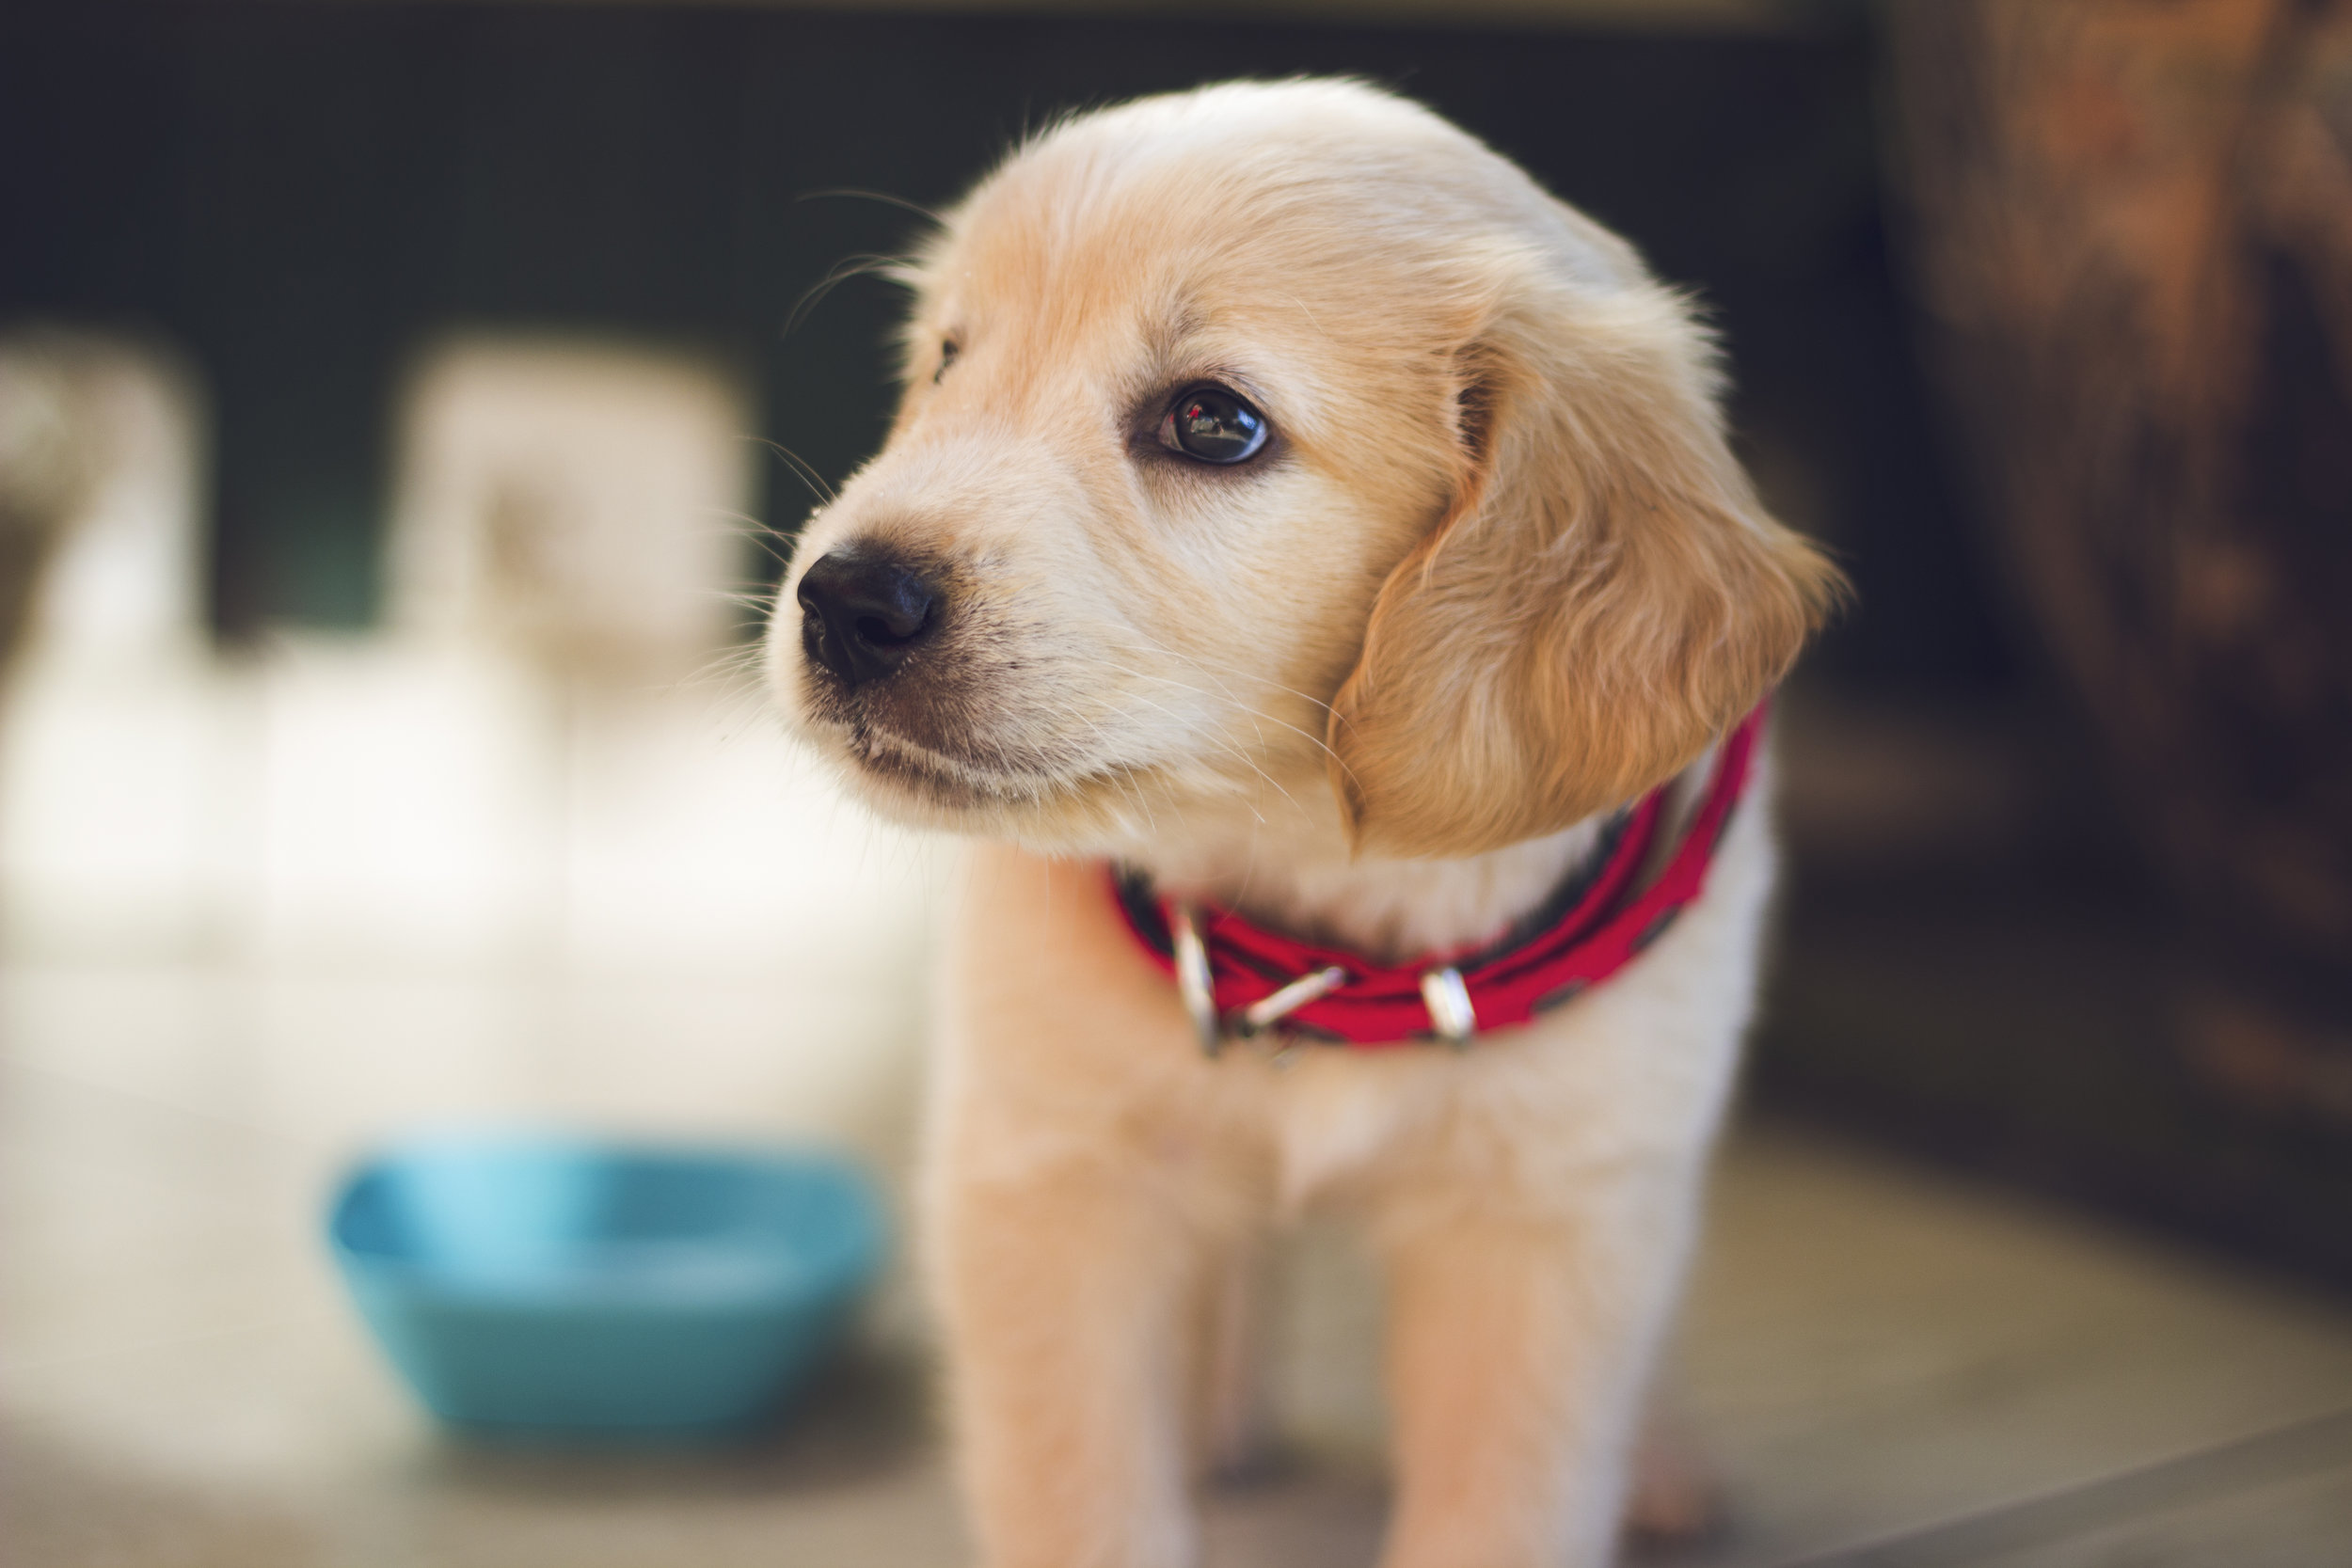 Helpful Resources - We get many questions about where to find reputable resources for puppy and dog owners. Use the list below to find recommended local businesses, organizations, and online information helpful for you and your dog.